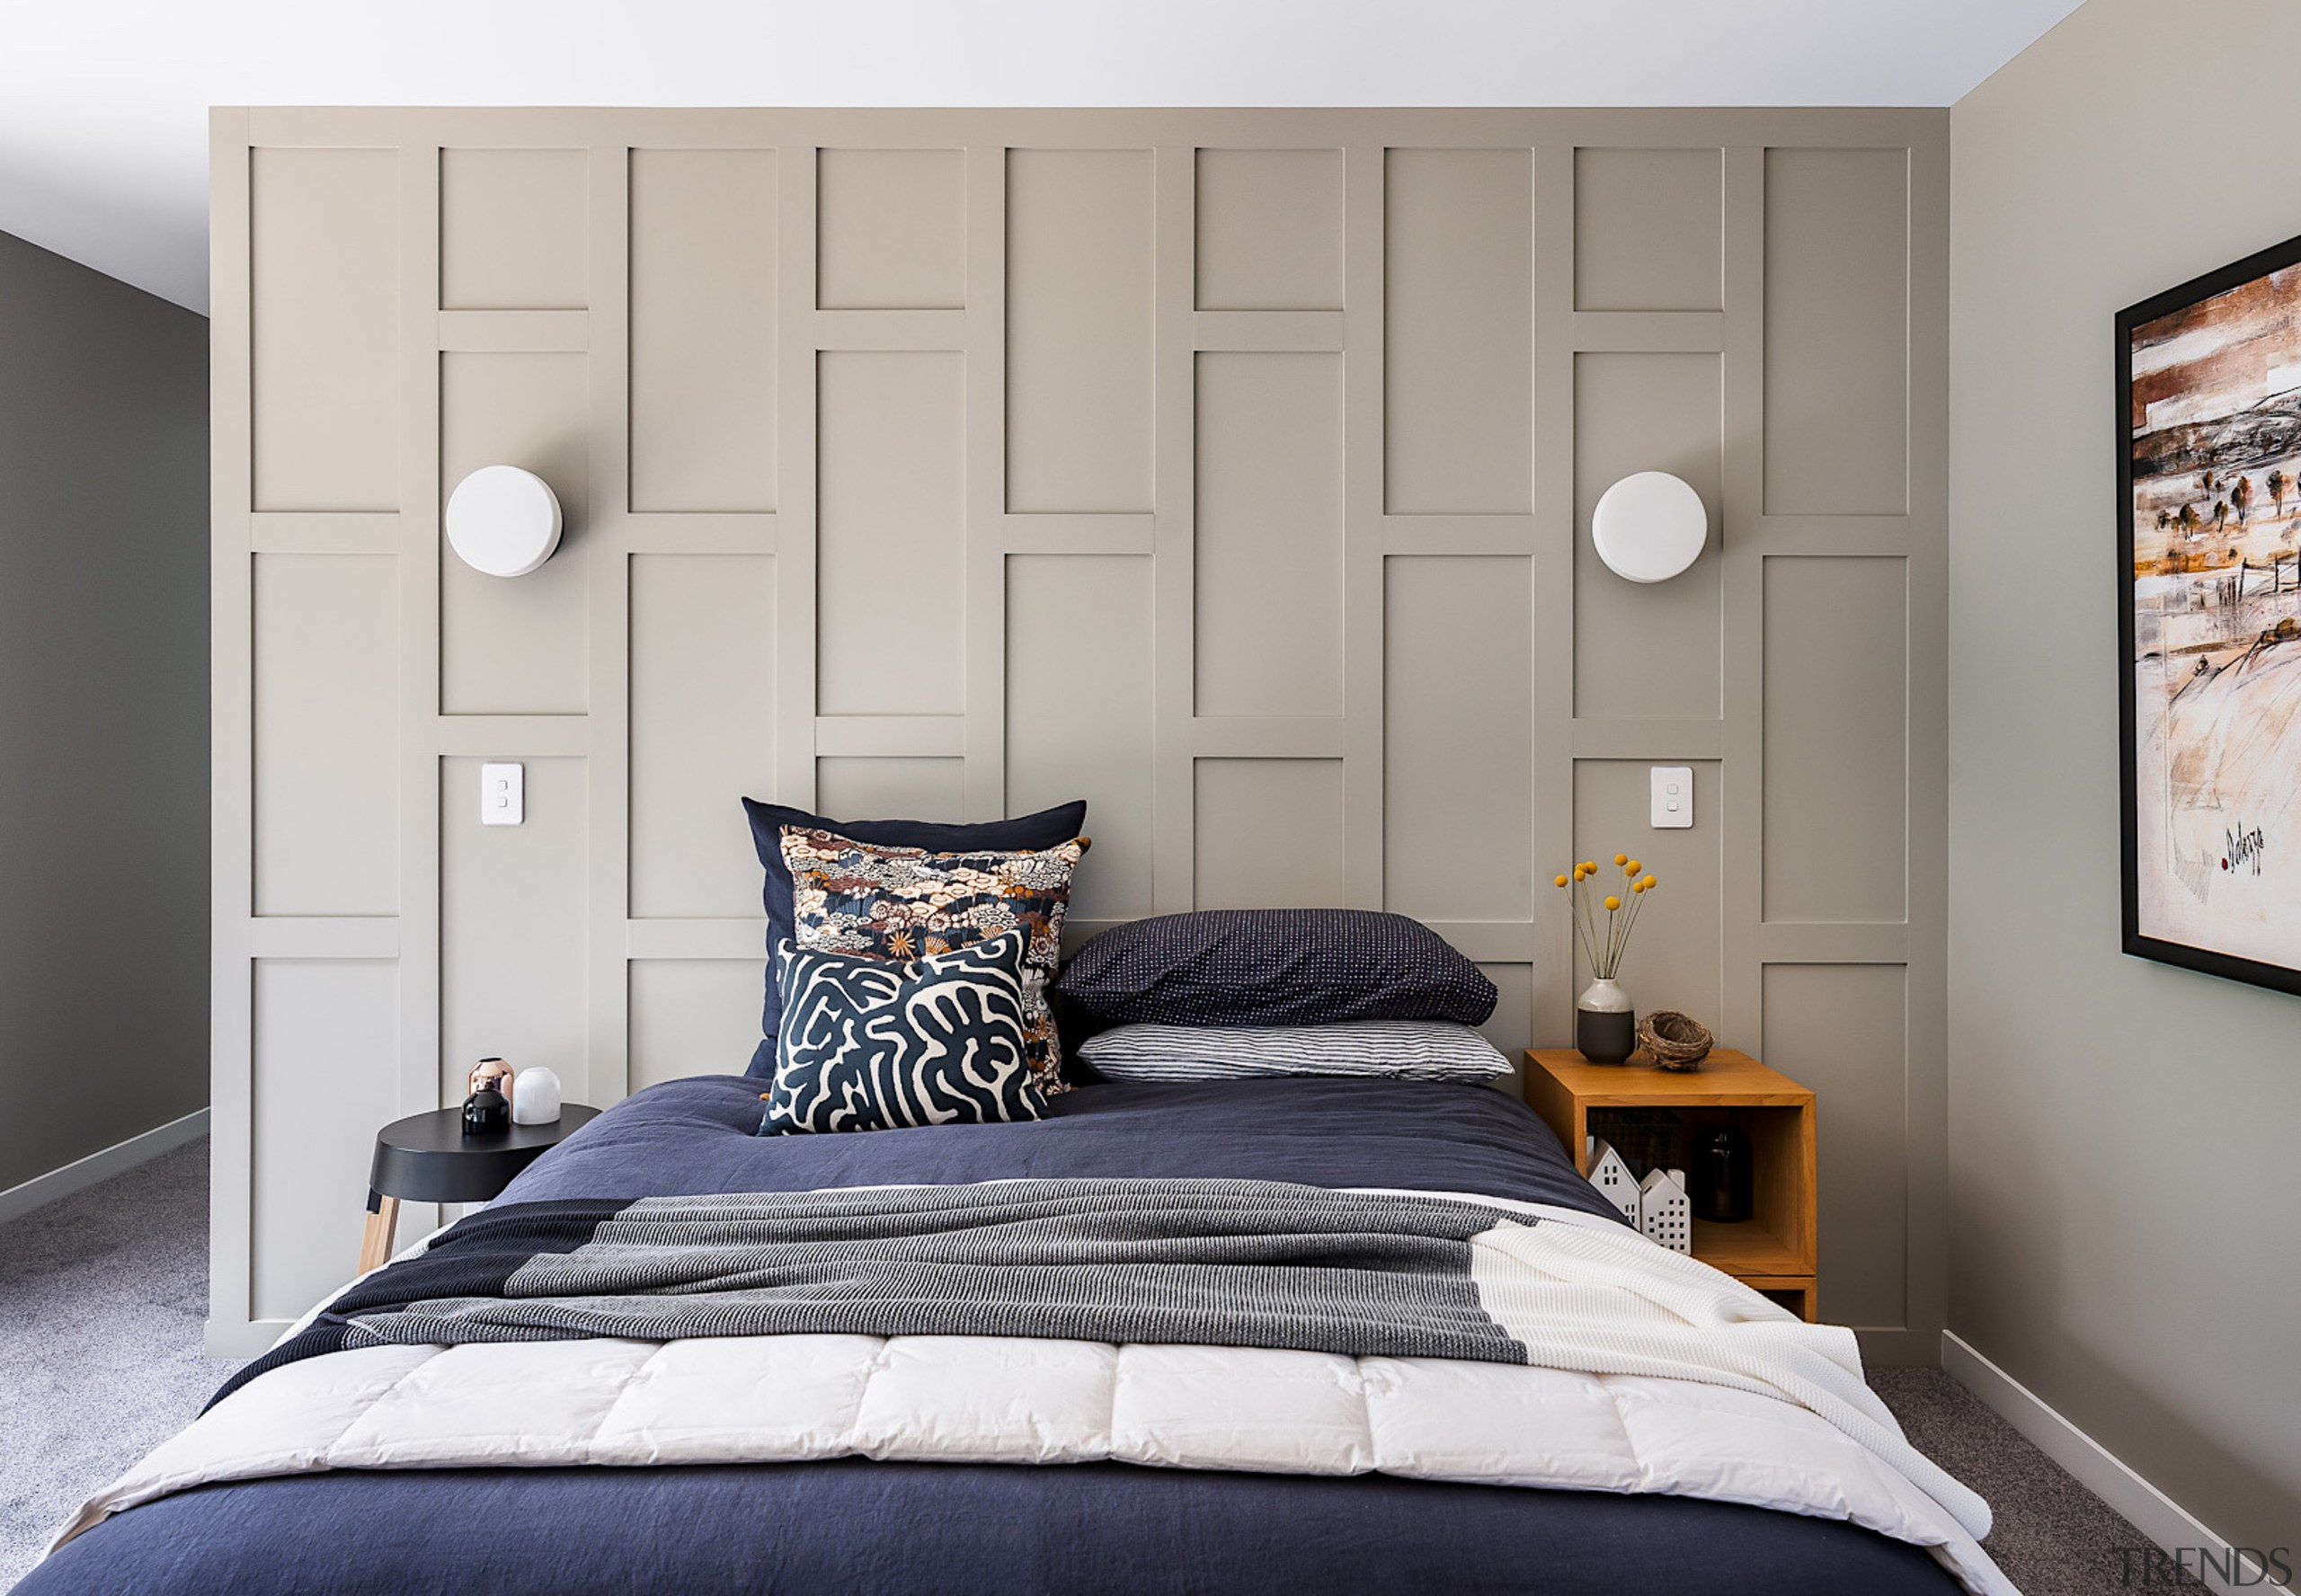 The master bedroom bedhead wall was built cost